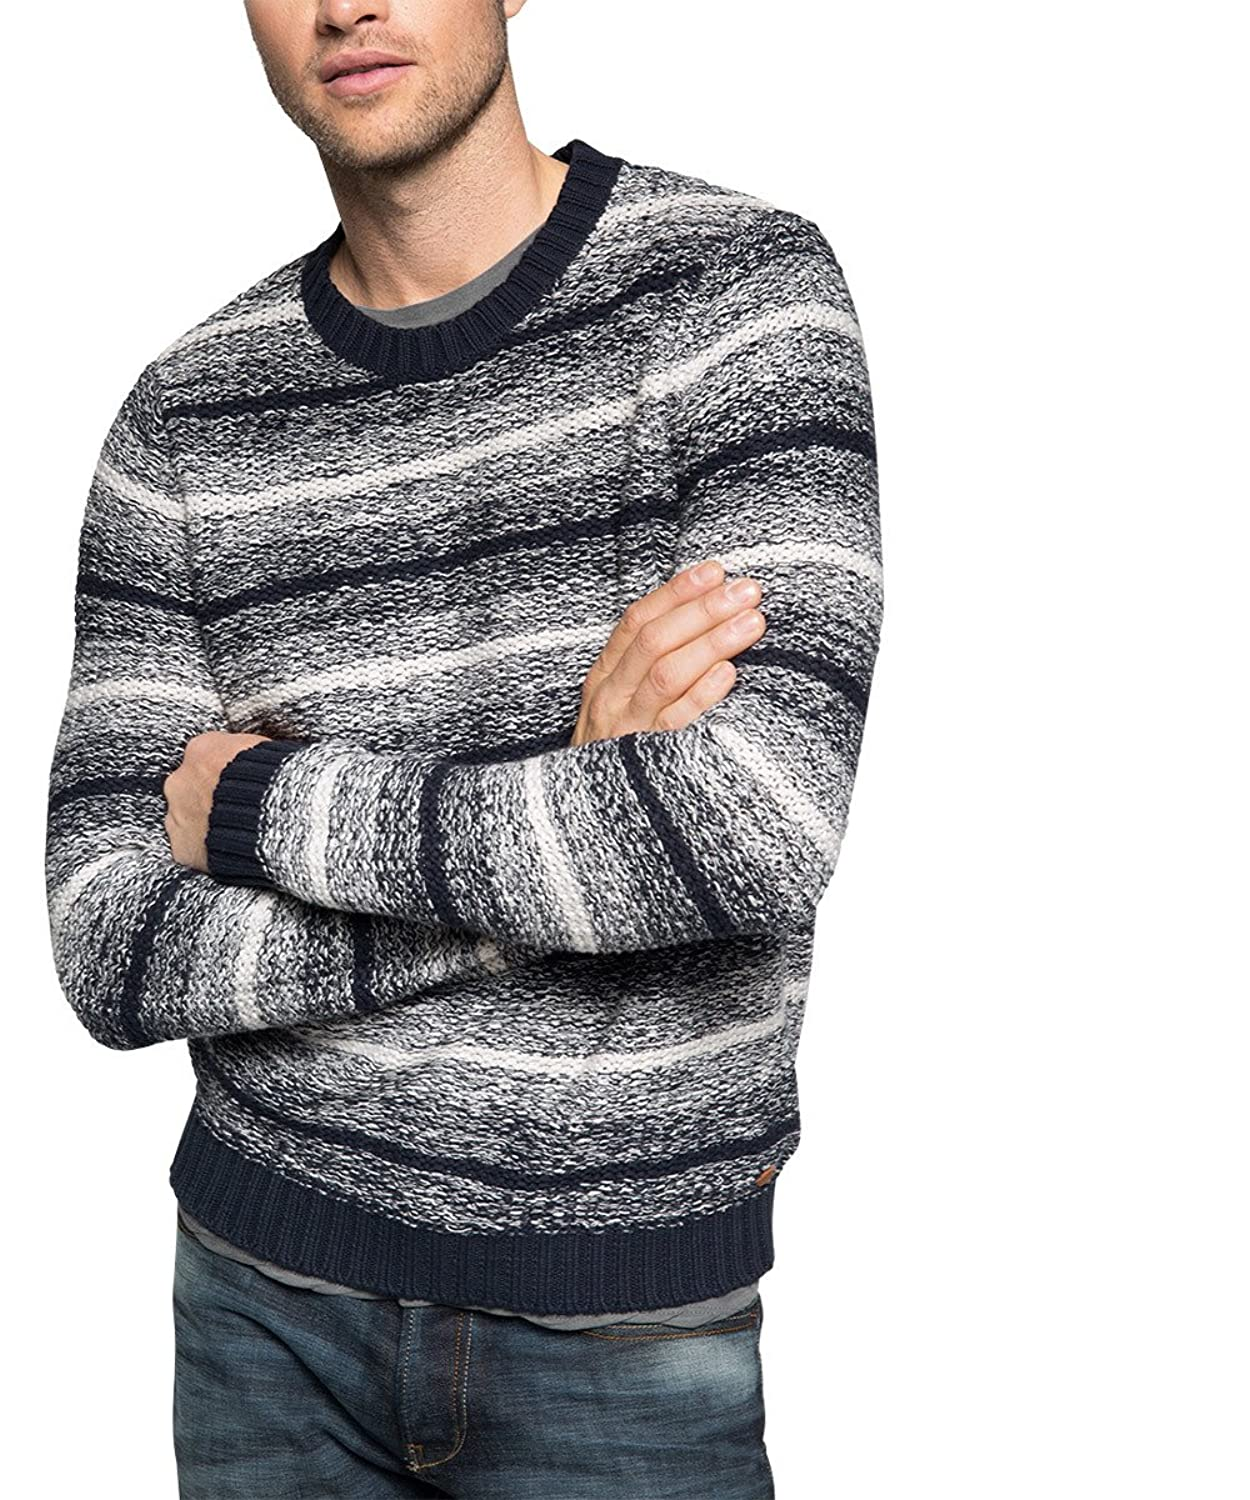 edc by Esprit Men's Grobstrick Long Sleeve Jumper